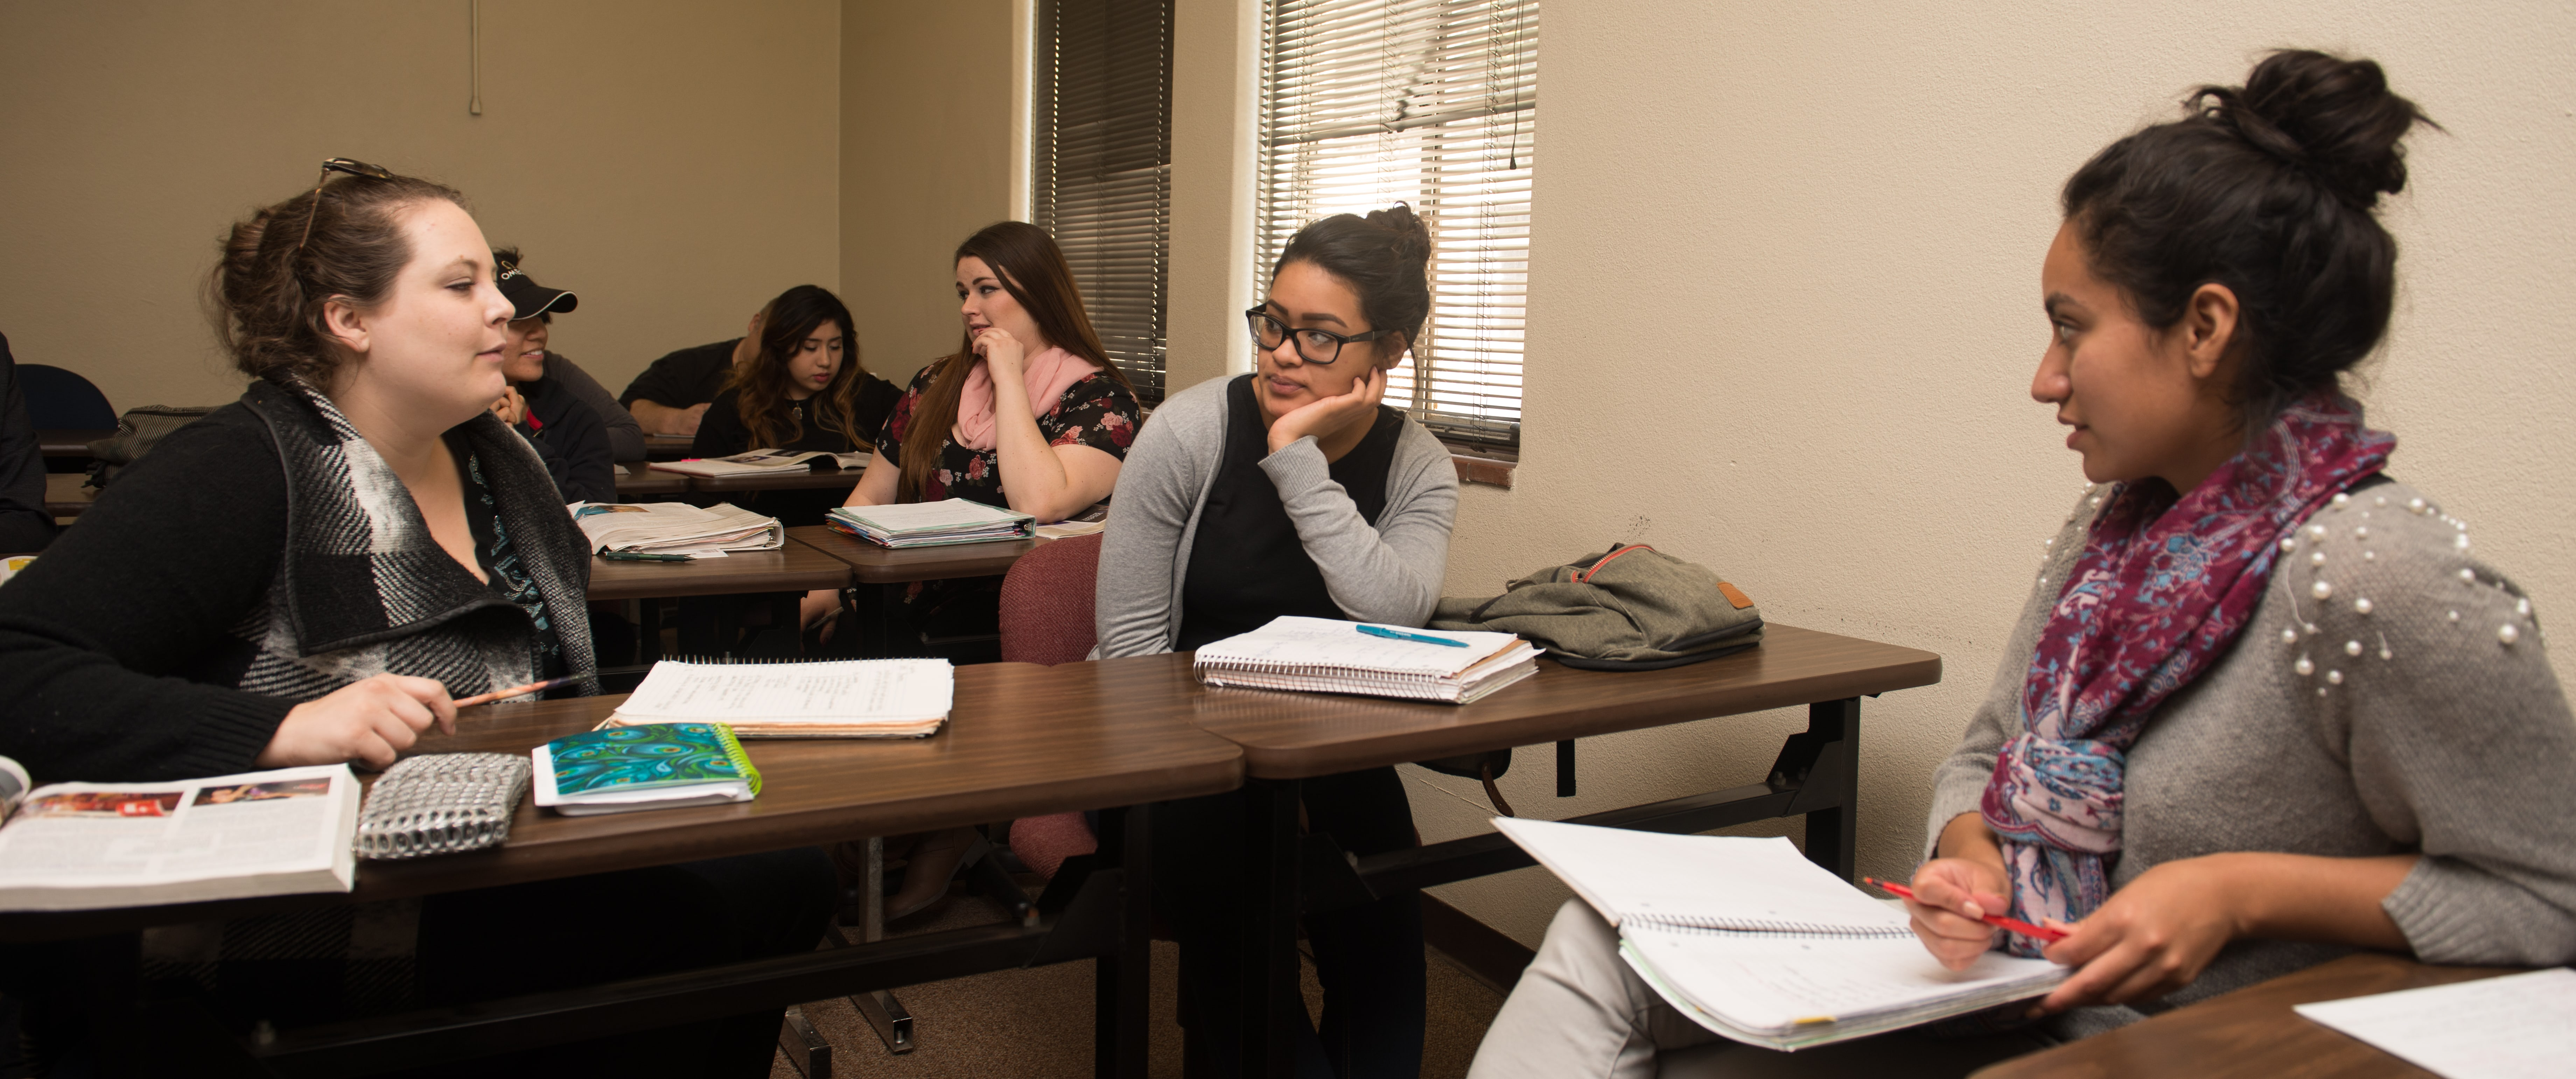 internships fullerton college business cis division students in classroom setting